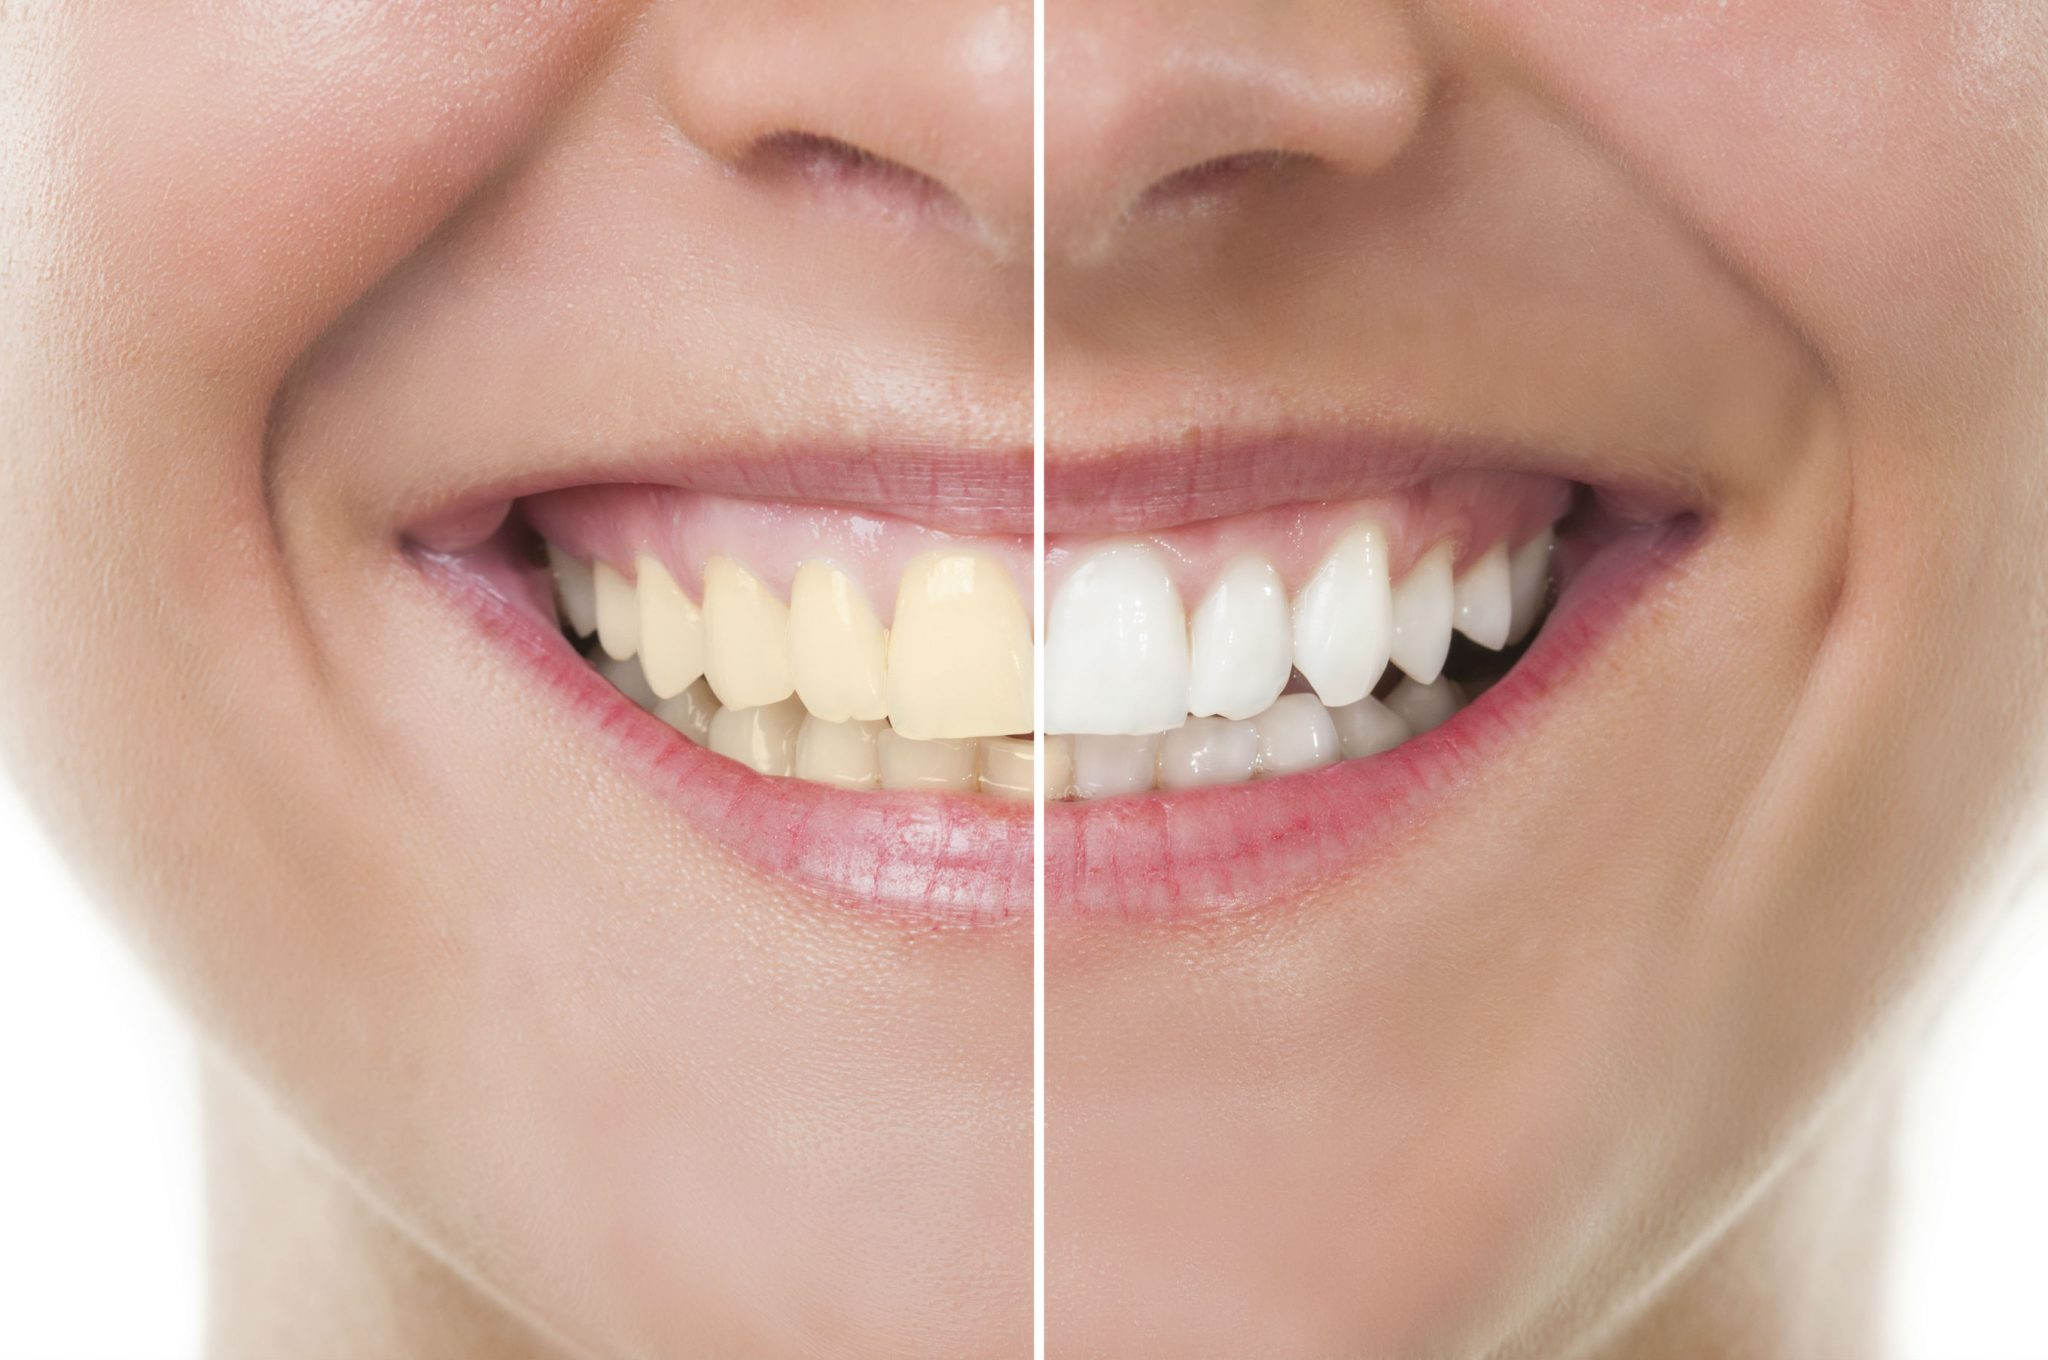 woman-teeth-closeup-before-after-smile-patient-cosmetic-dentistry-near-me-san-mateo-ca